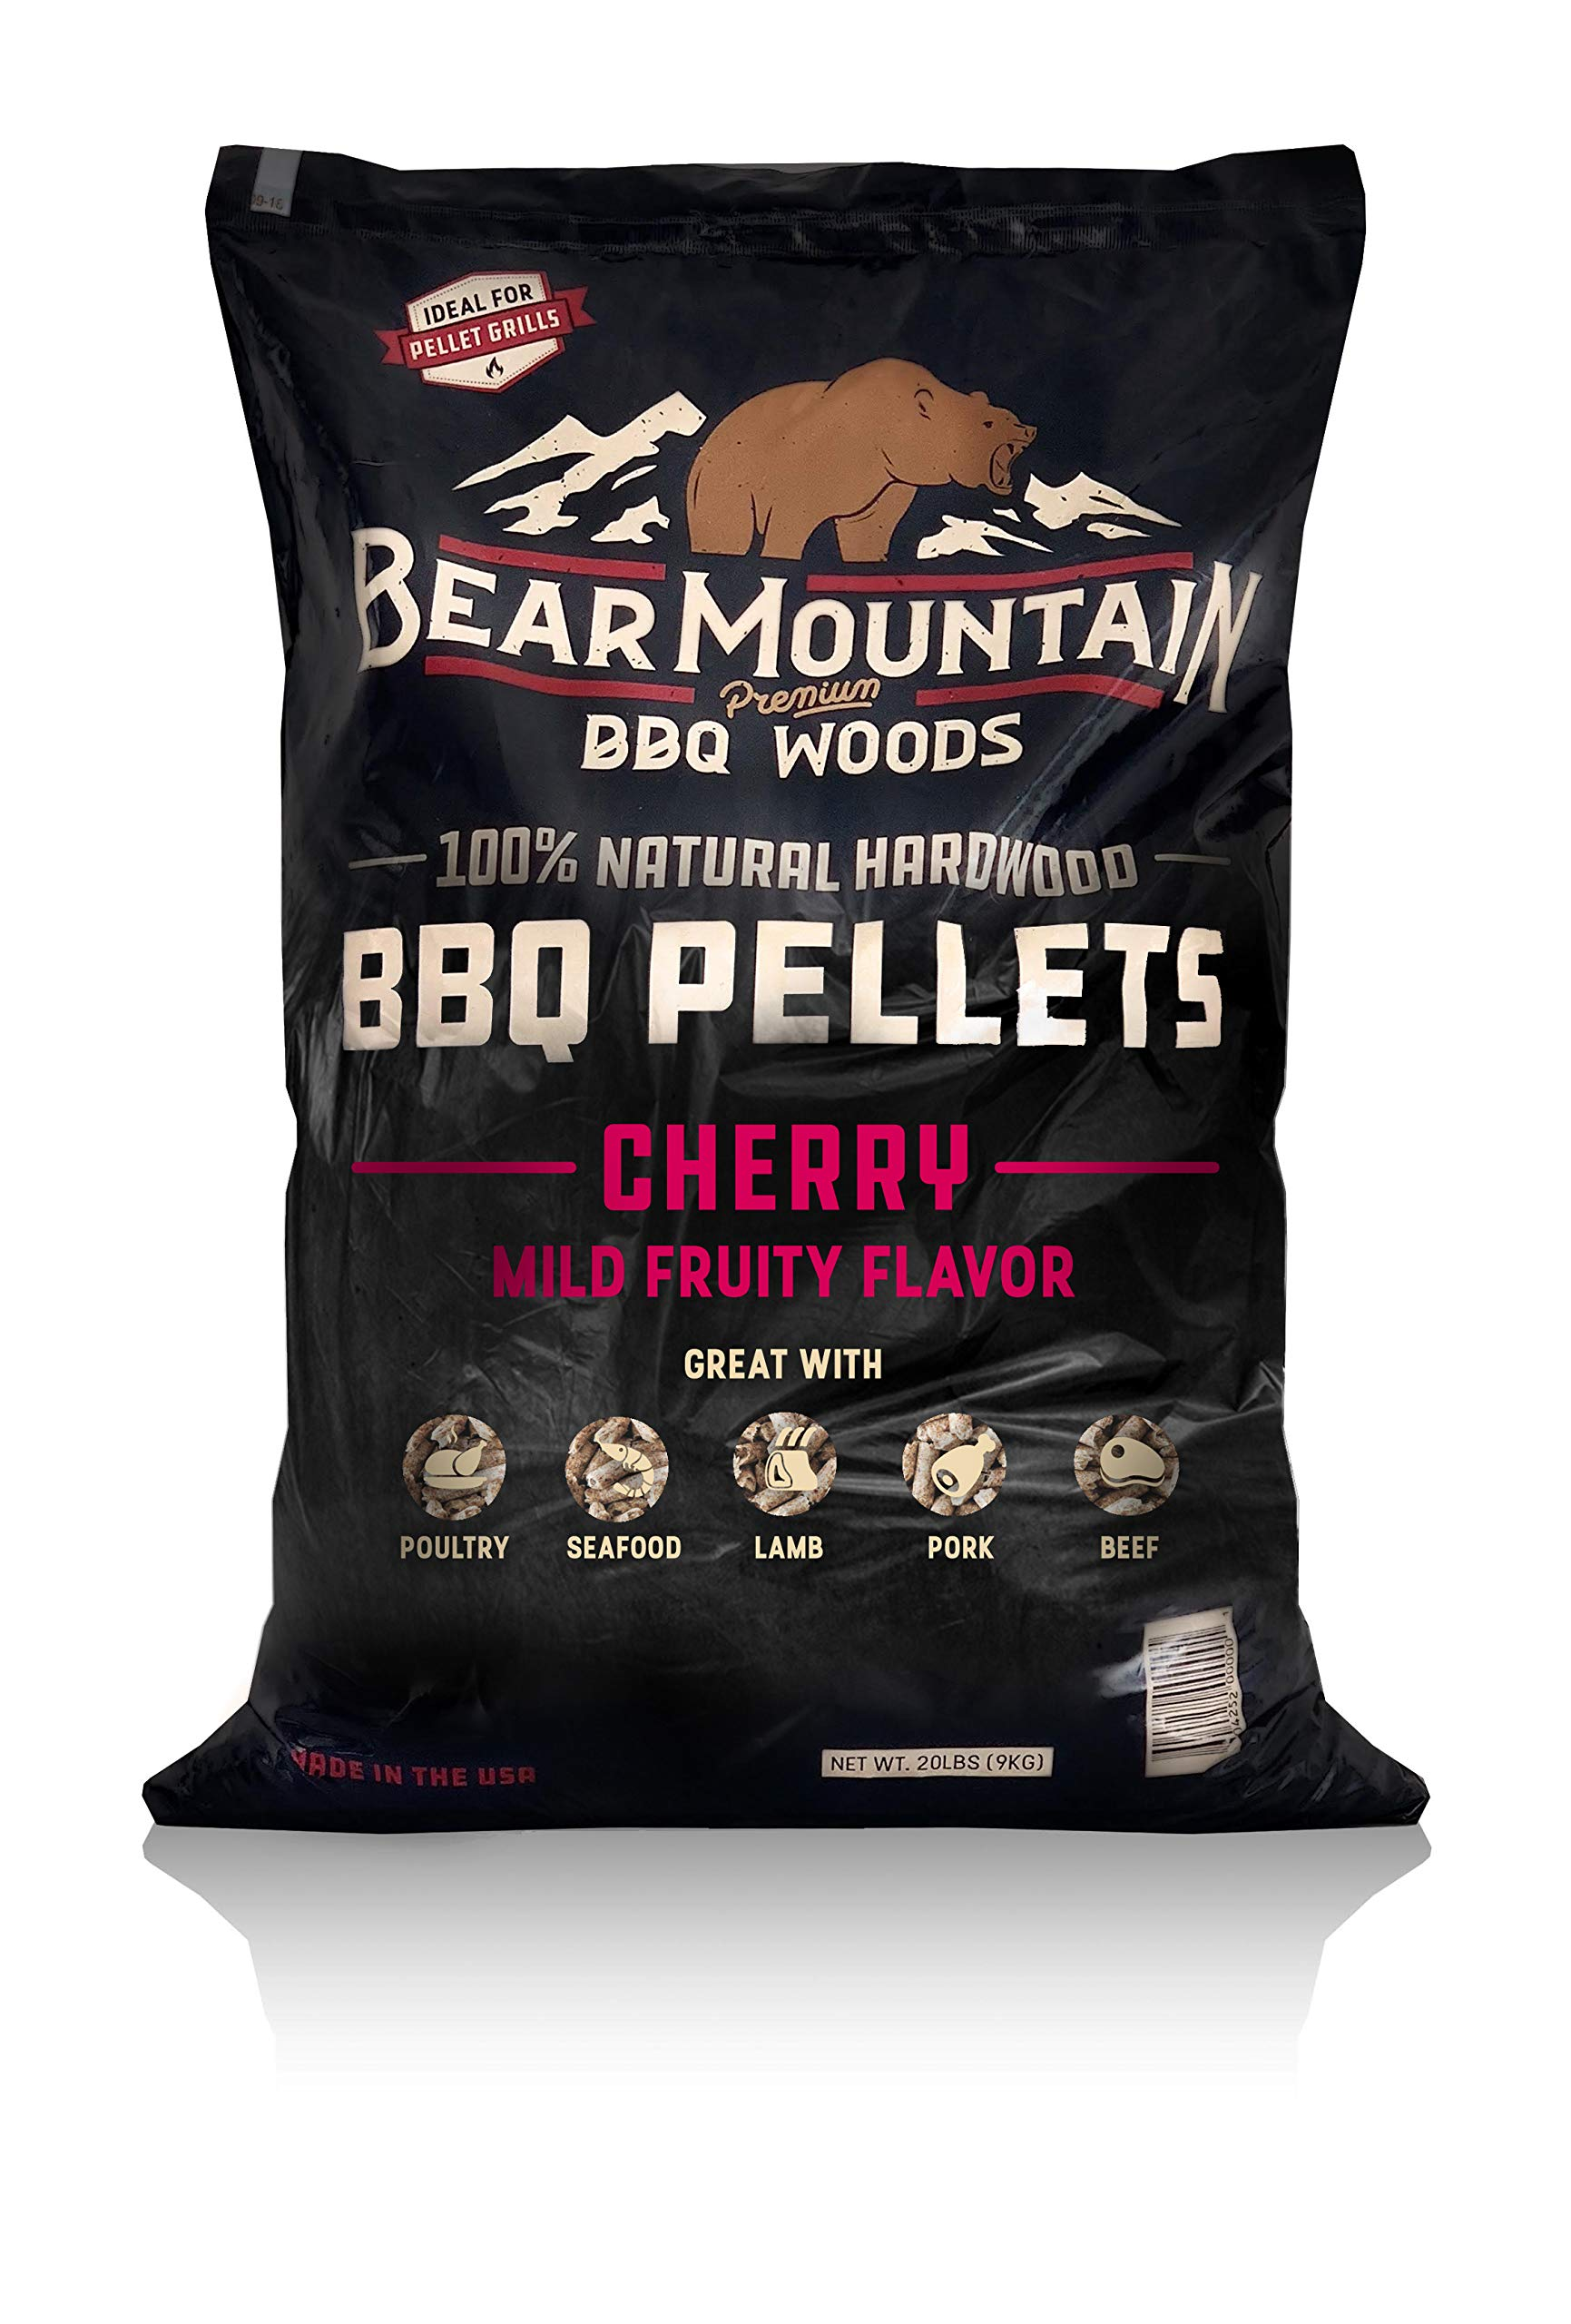 Bear Mountain BBQ 100% All-Natural Hardwood Pellets - Cherry Flavor (20 lb. Bag) Perfect for Pellet Smokers, or Any Outdoor Grill | Mild, Fruity Wood-Fired Flavor by Bear Mountain BBQ